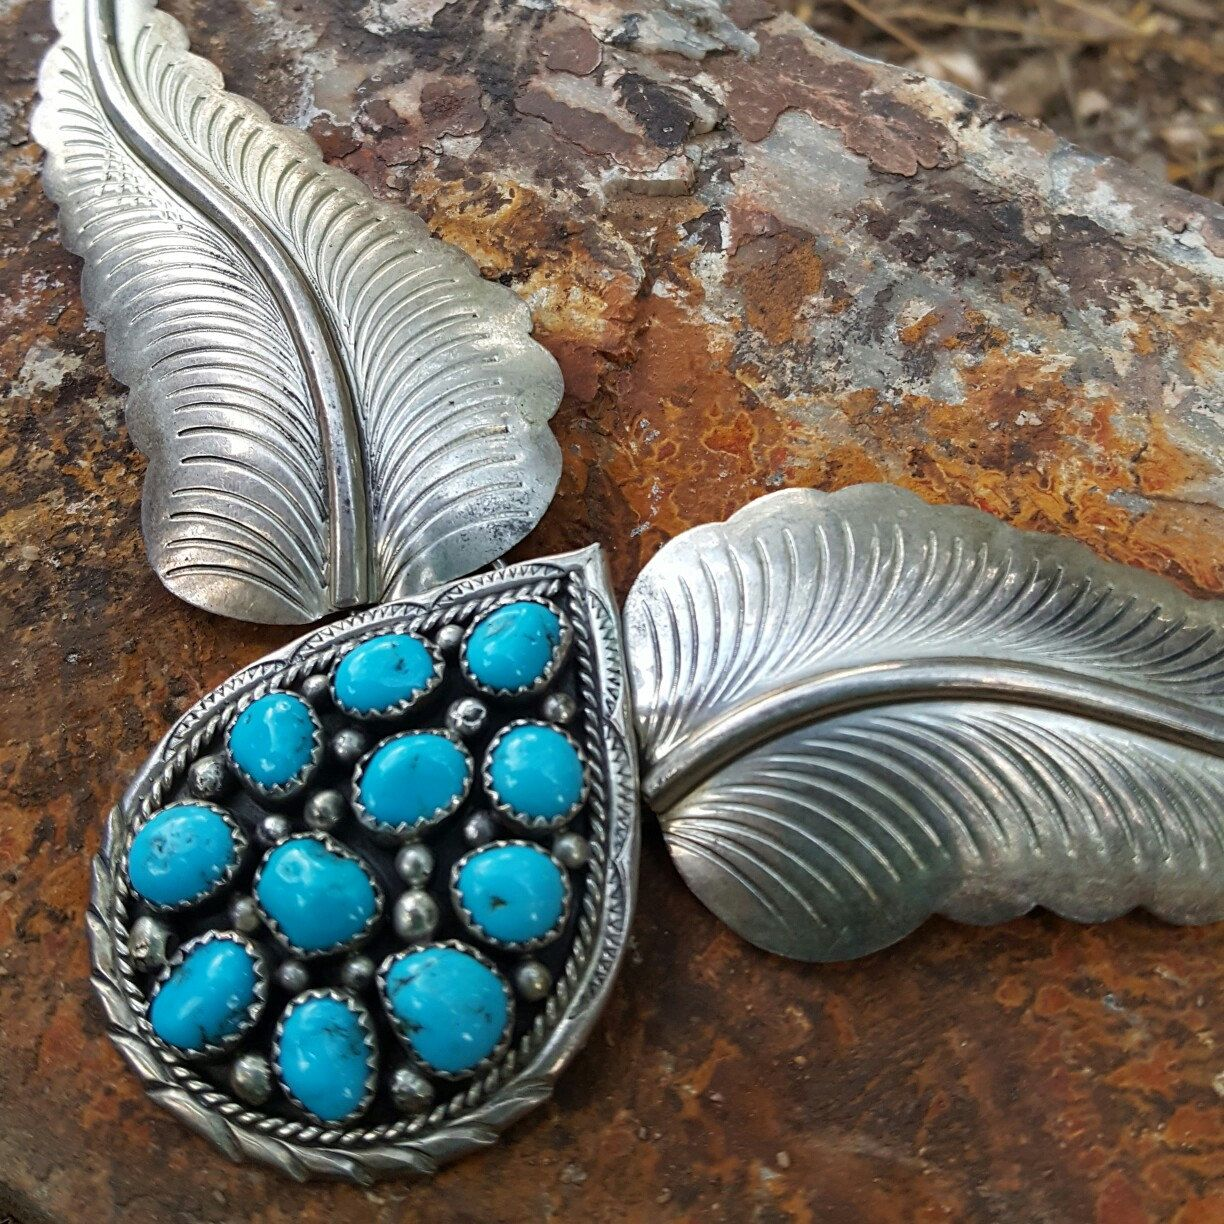 Native and Latin American jewelry on sale now at The Cowgirl.